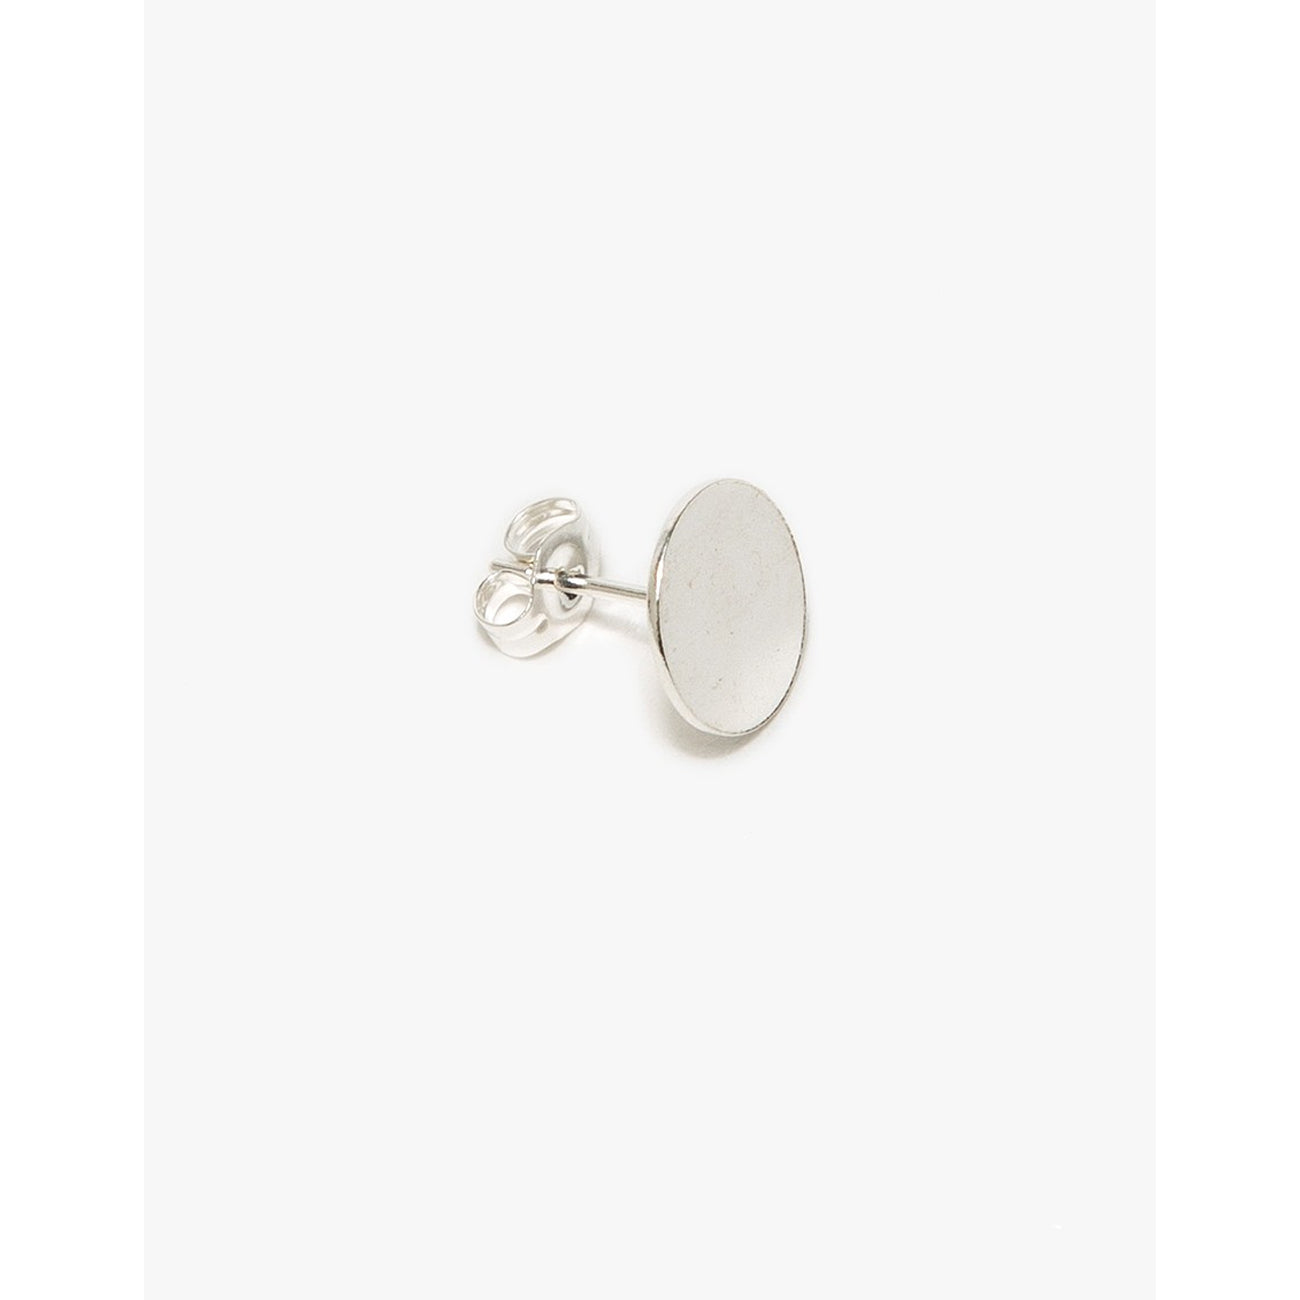 Kathleen Whitaker Sequin Stud in Sterling Silver